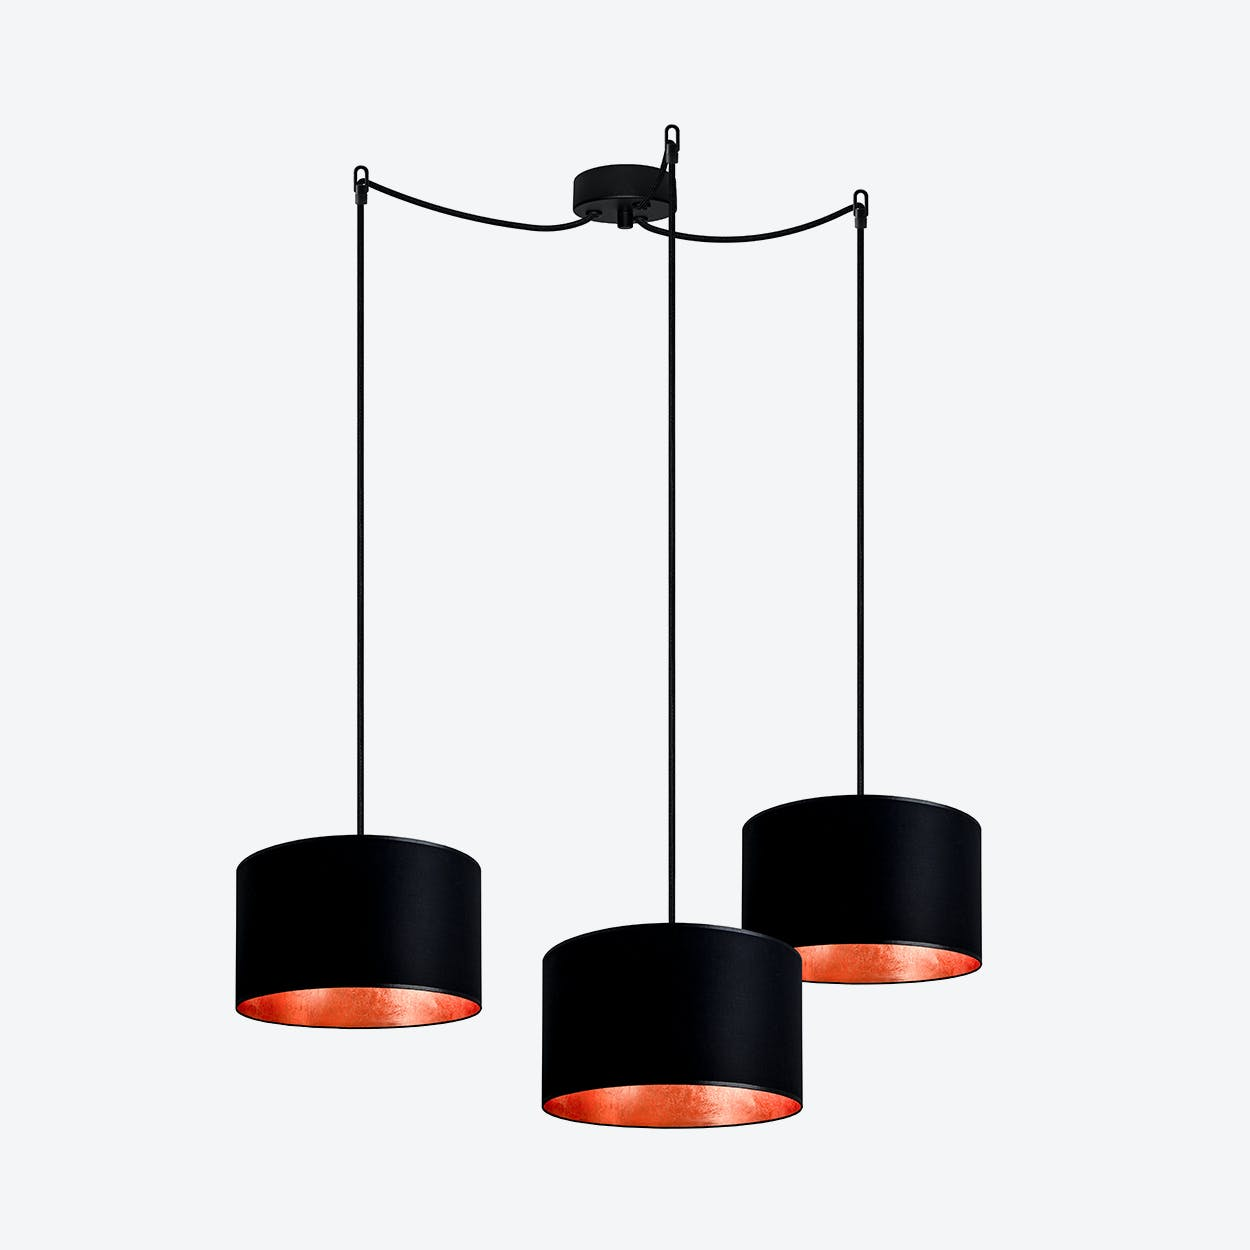 MIKA Small Triple Pendant Light in Black with Copper Leaf